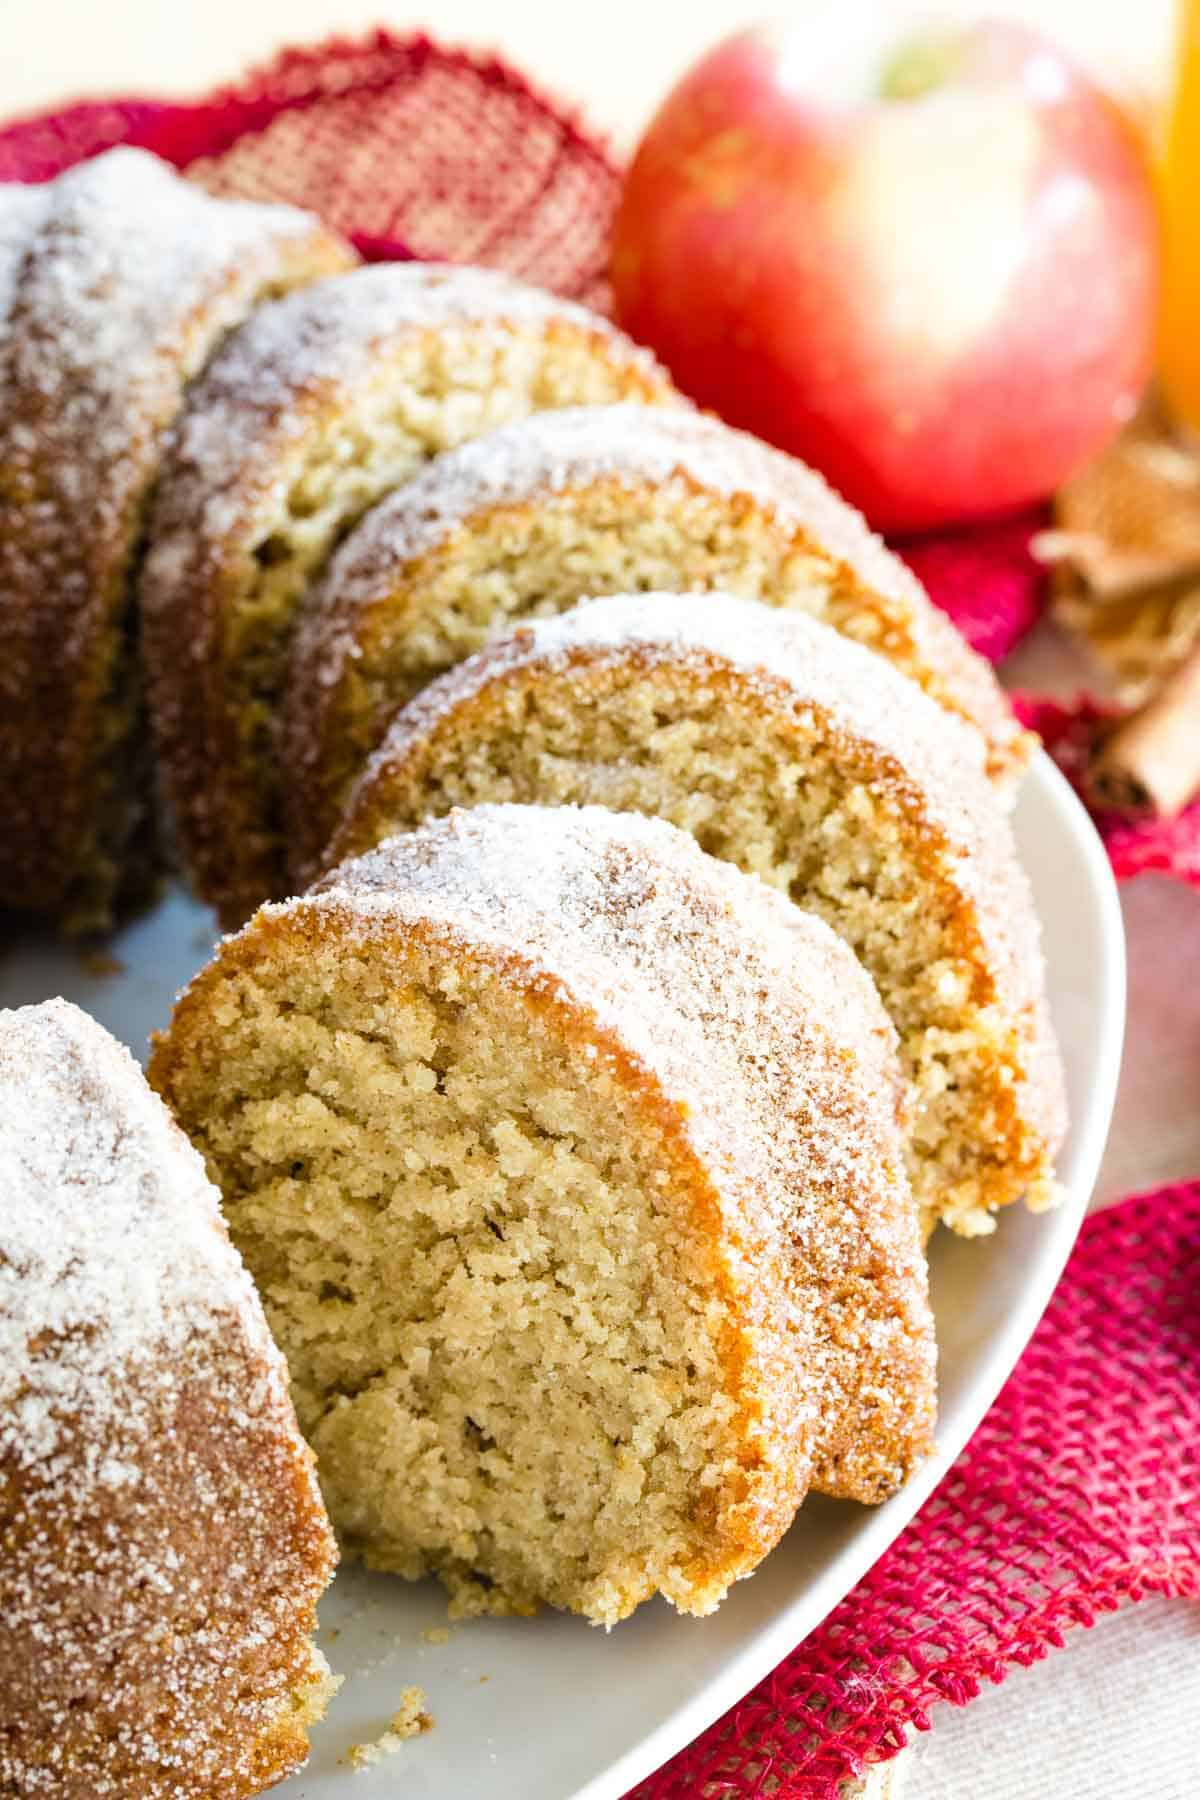 Sliced Gluten Free Apple Cider Cake